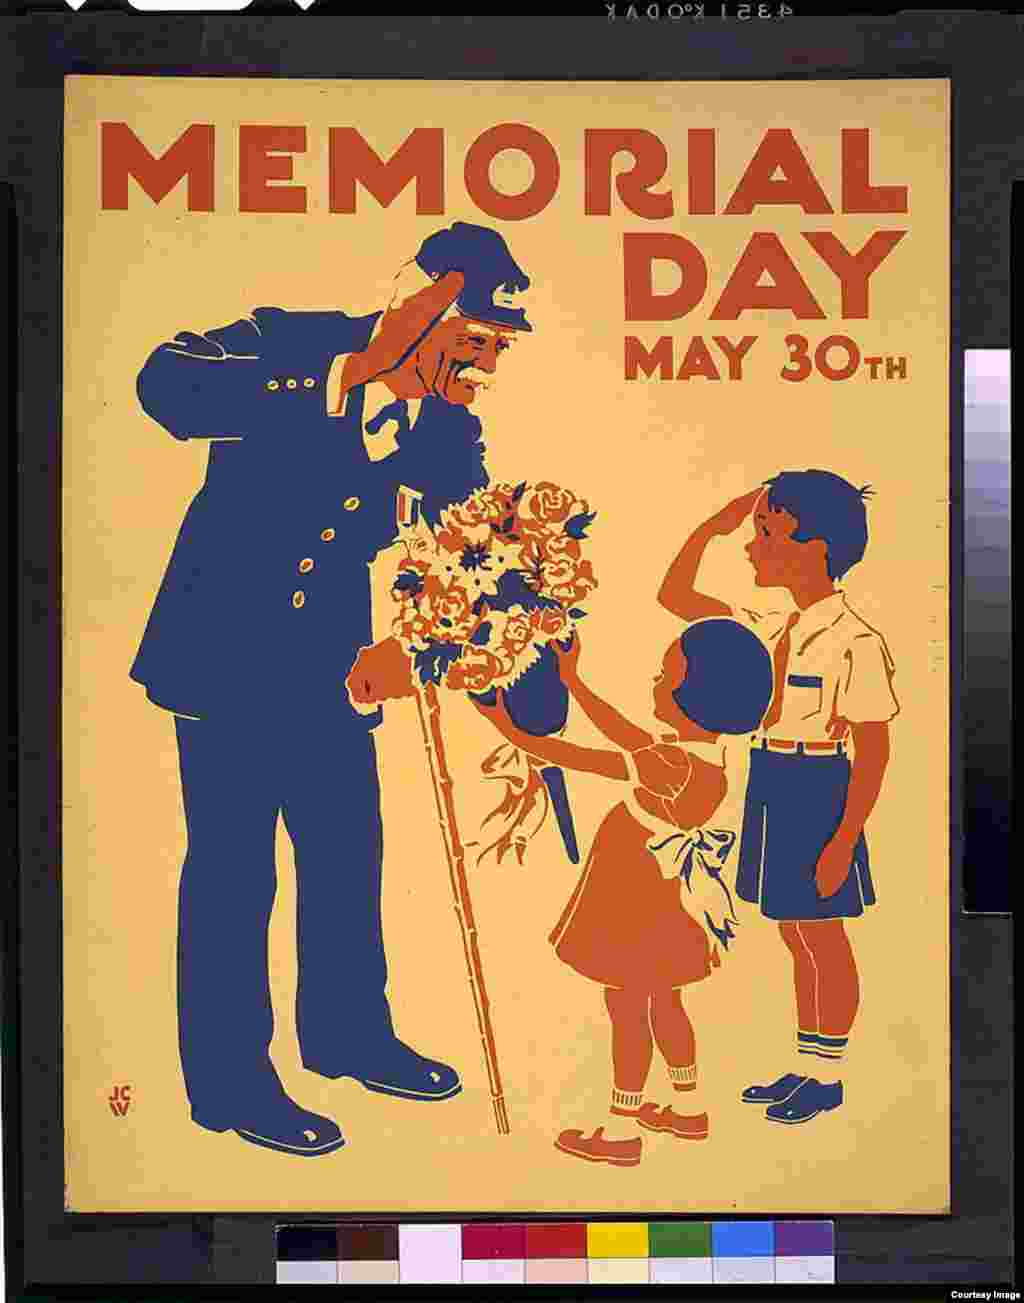 A poster honors veterans, showing a boy and an old soldier saluting each other, and girl presenting the soldier with bouquet of flowers. (photo courtesy of the Federal Art Project in New York, 1936 or 1937]